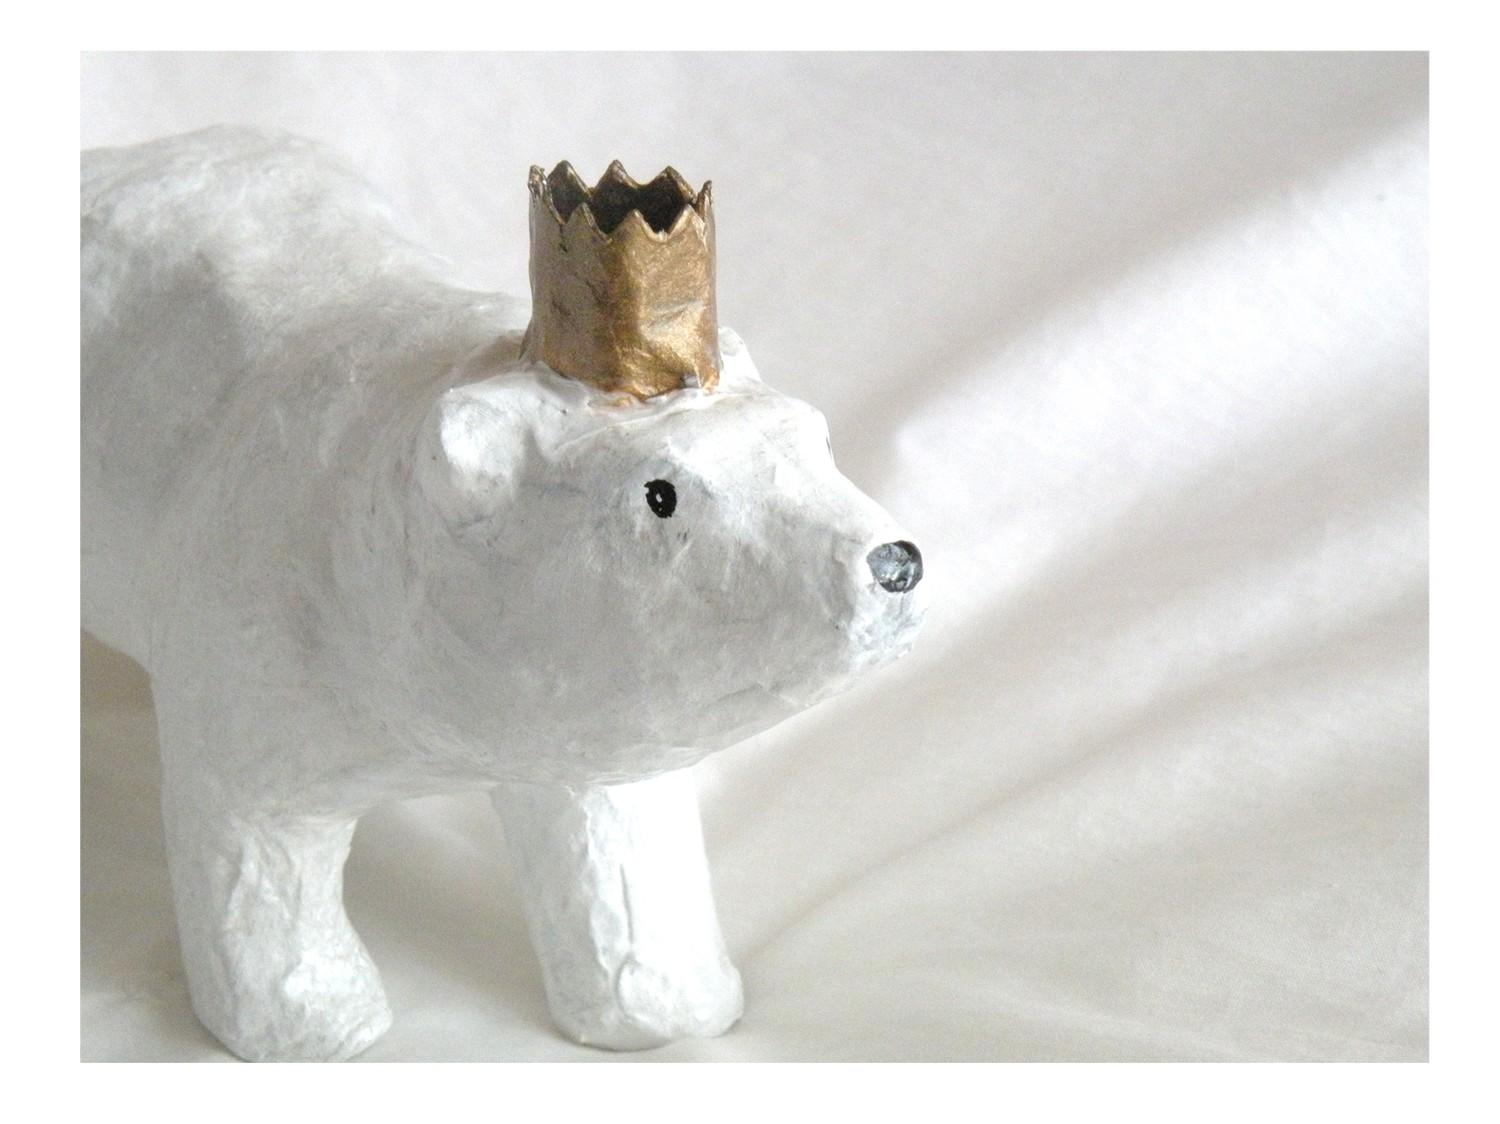 King of Snow by jardindhiver on Etsy